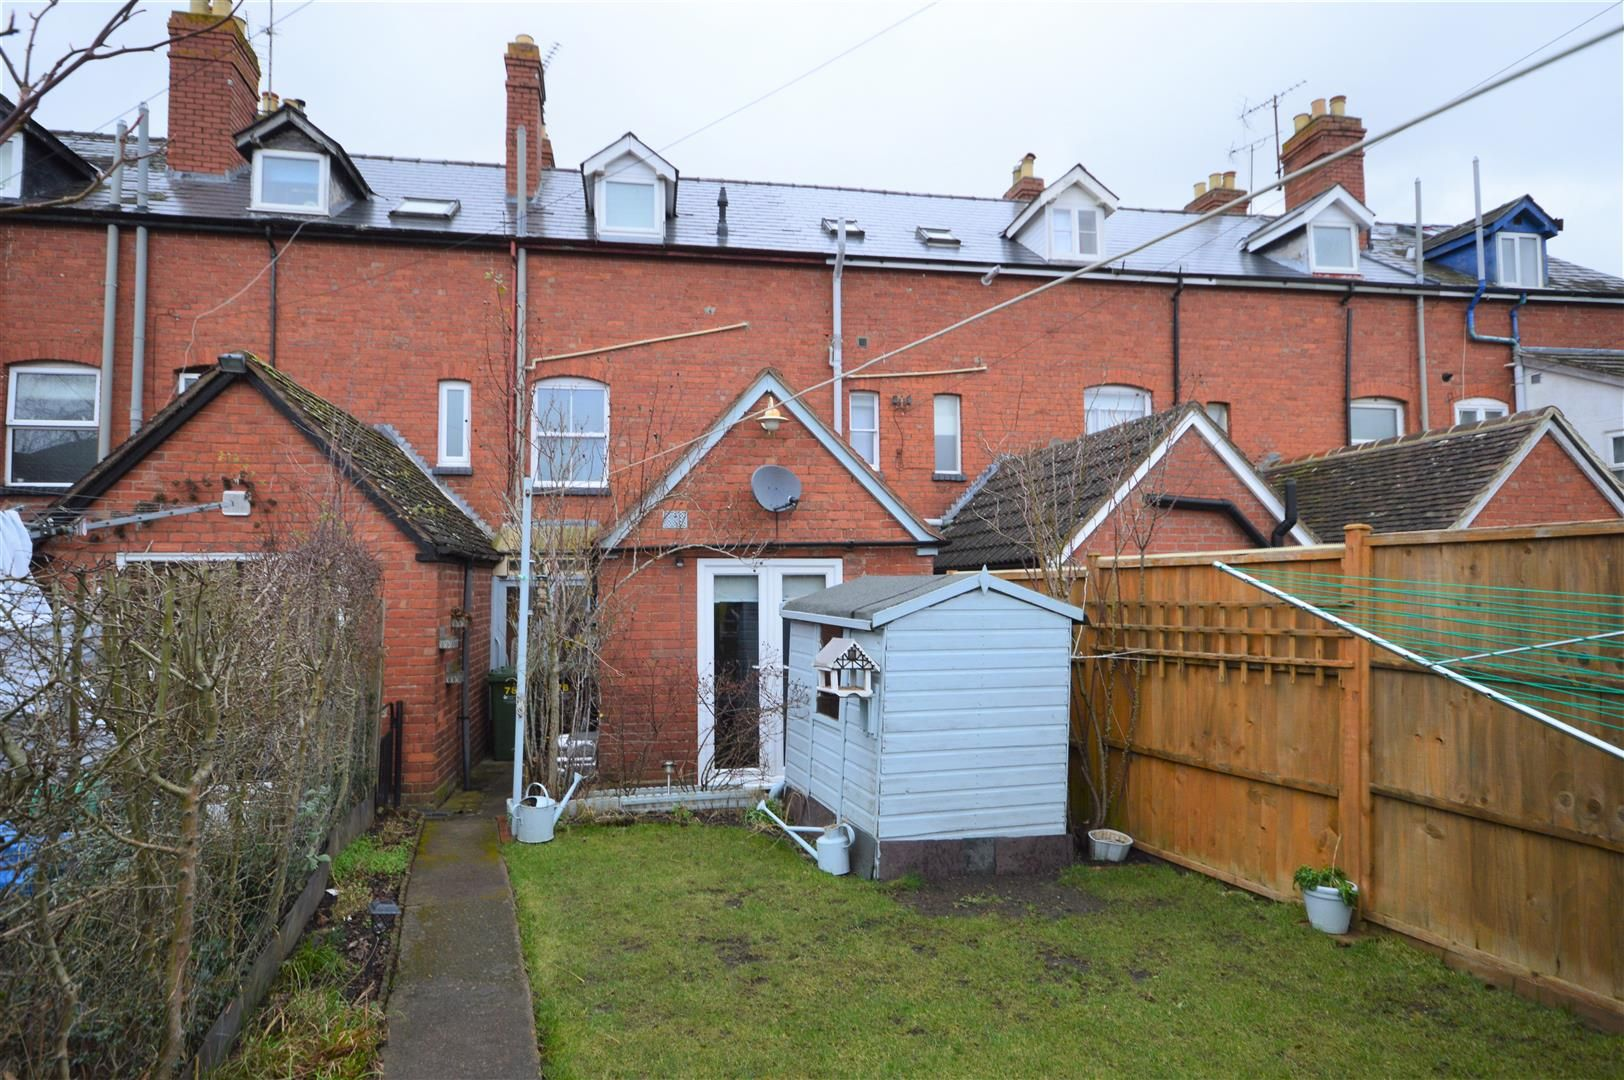 3 bed end of terrace for sale in Leominster  - Property Image 20